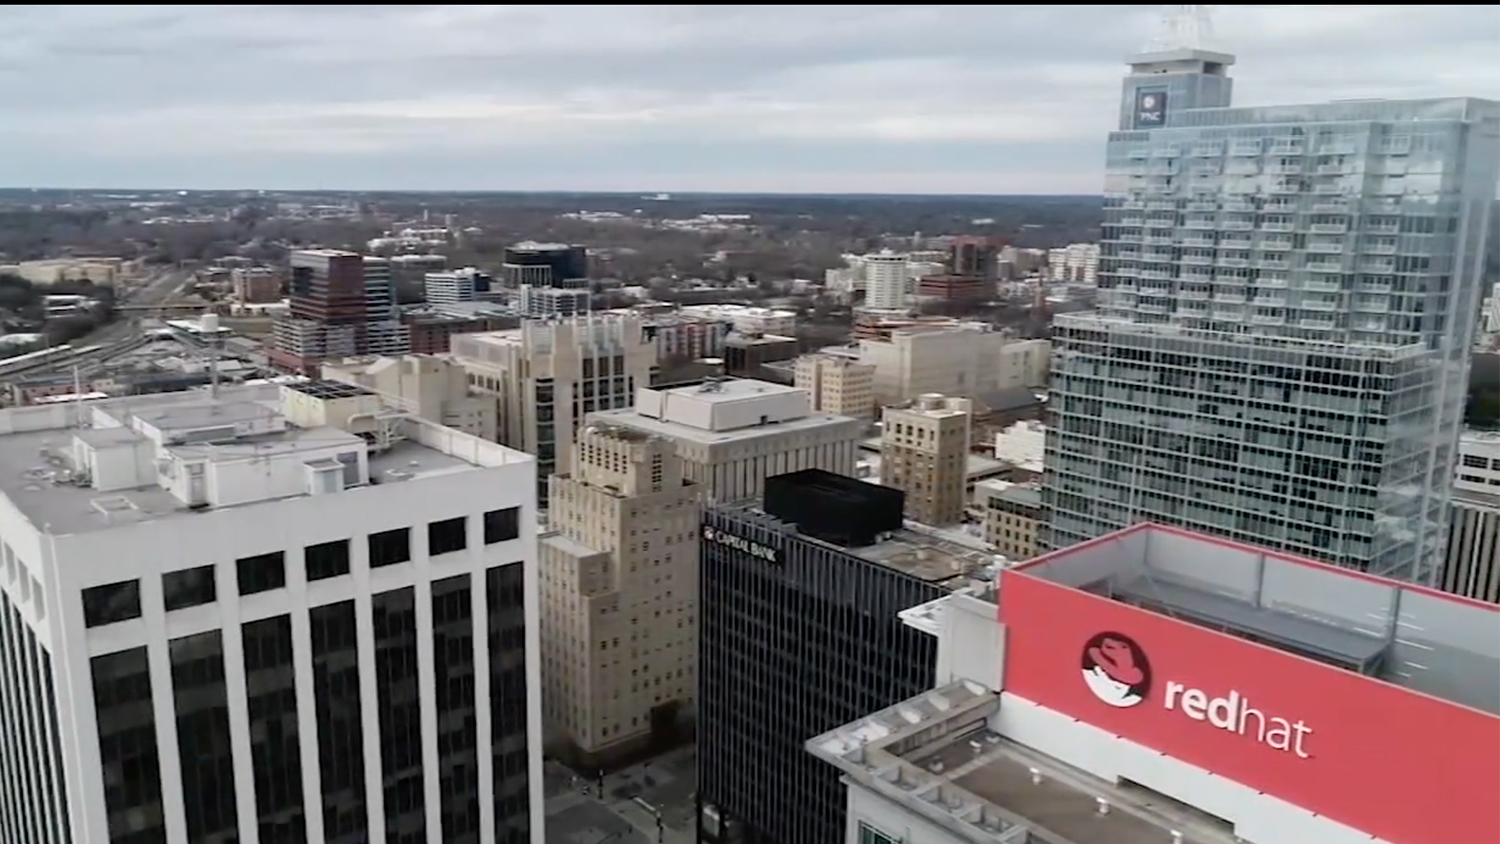 Aerial view of the downtown Raleigh Skyline